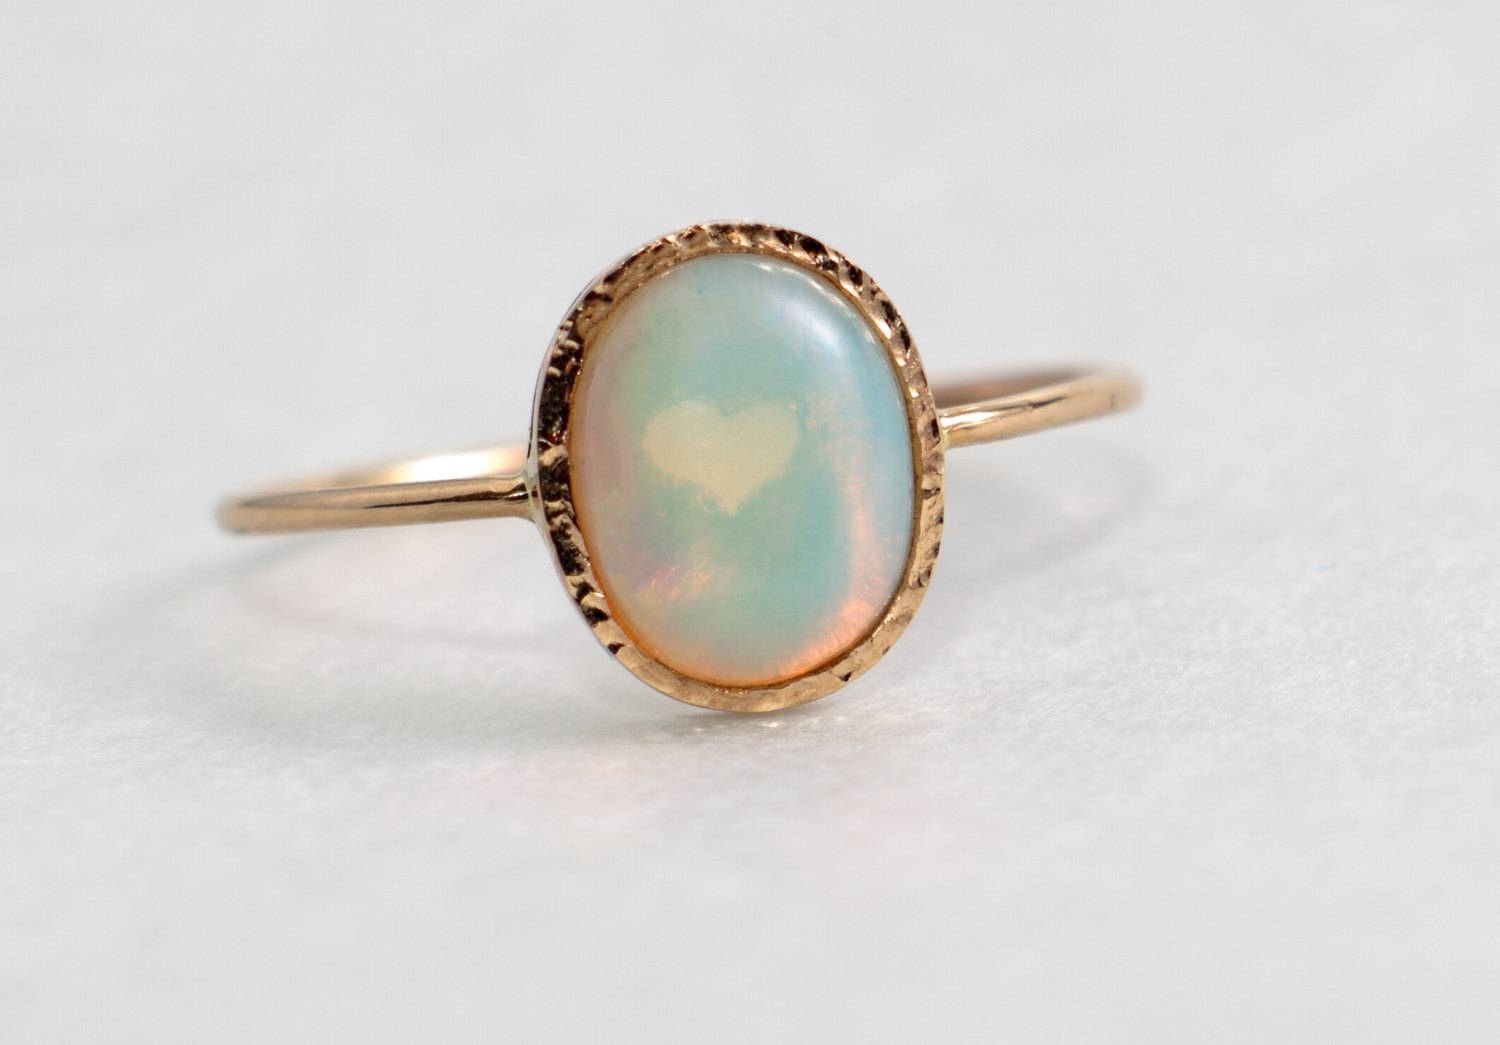 Fire Opal Engagement Ring, Solid 14K Gold, Opal Jewelry Within Opal Wedding Rings (Gallery 5 of 15)